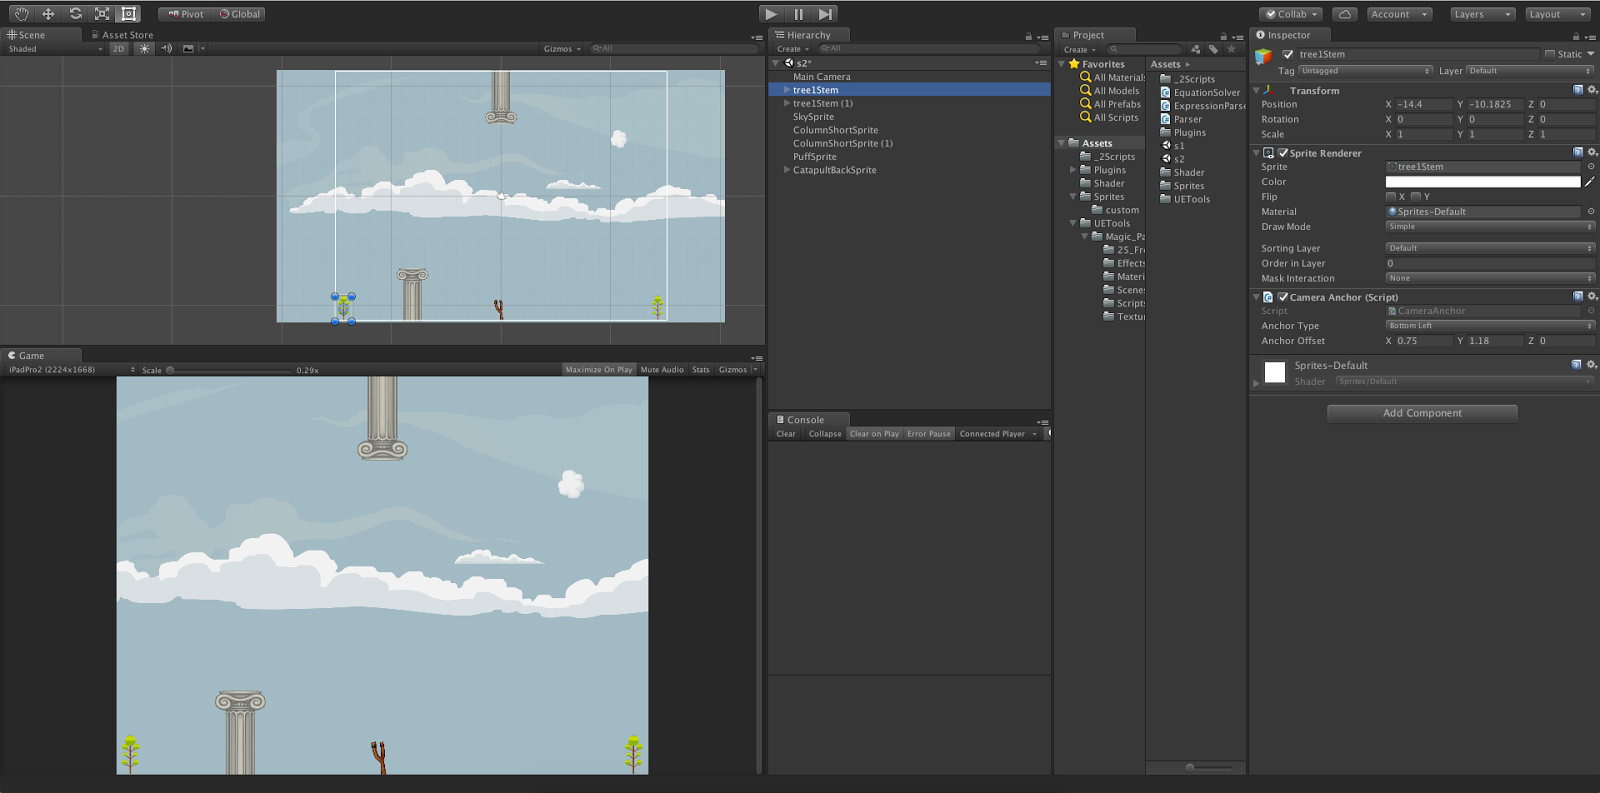 How to create 2D game in unity for all resolution devices | LetC